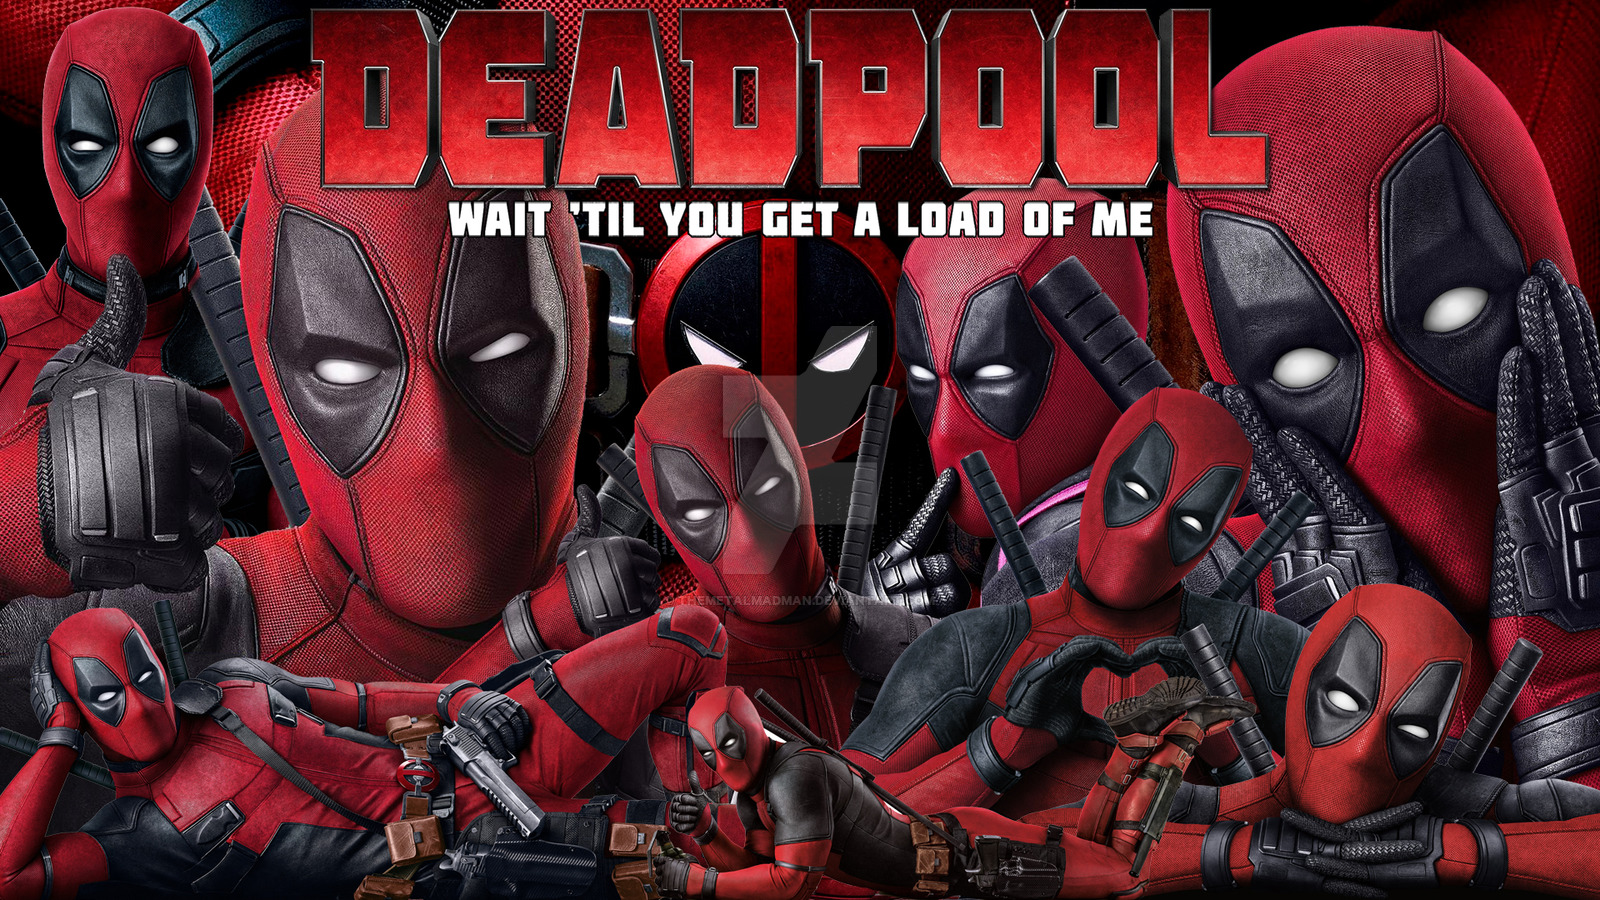 Deadpool 2016 Images Movie Wallpaper HD And Background Photos